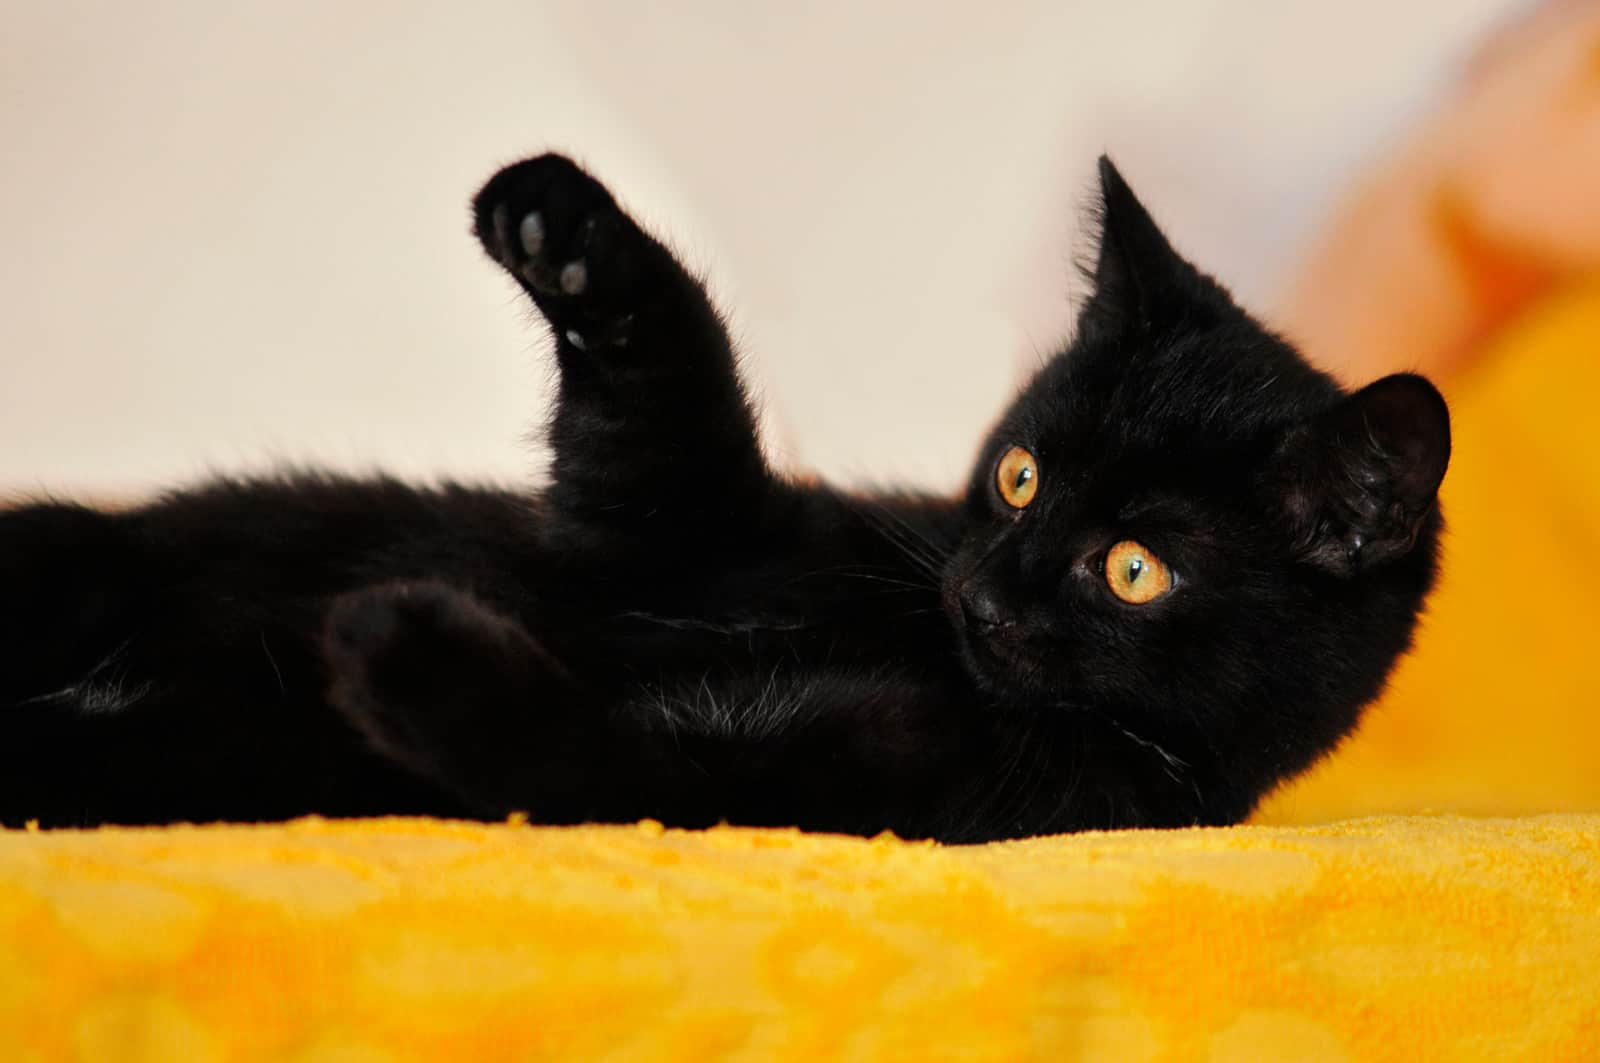 why do people think black cats are bad luck?